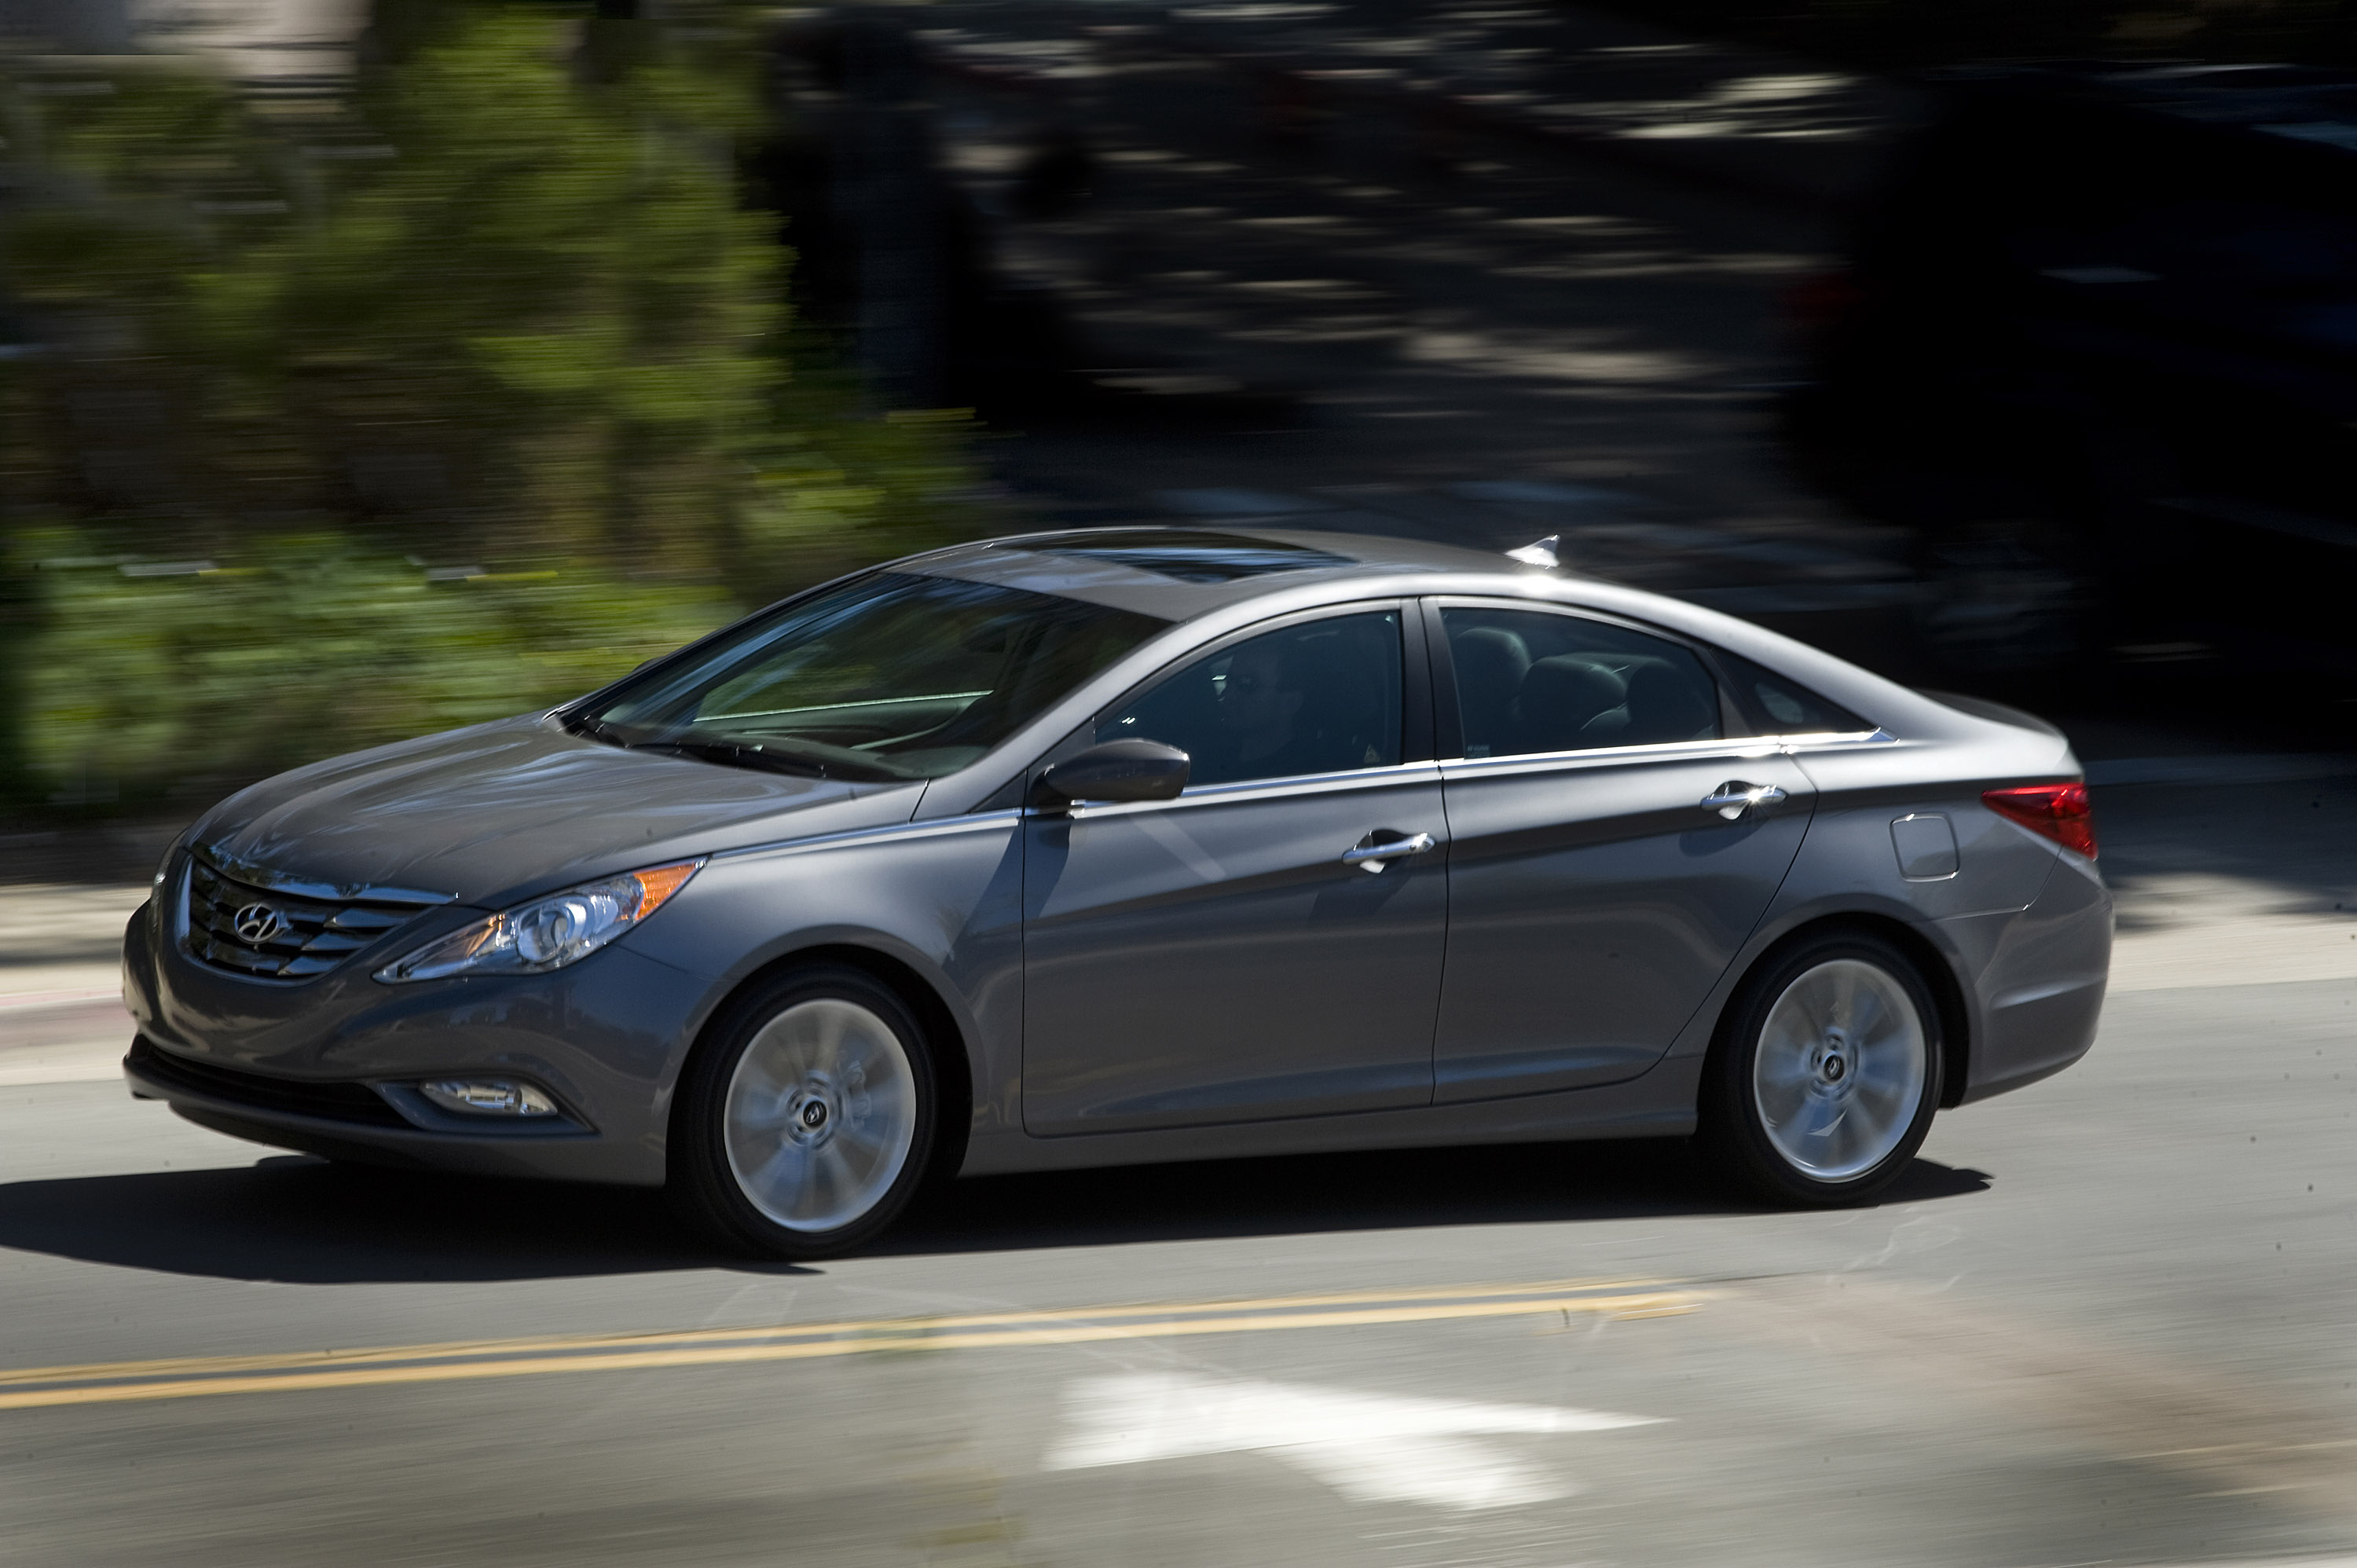 trend drive full sonata first news motor hyundai en dash